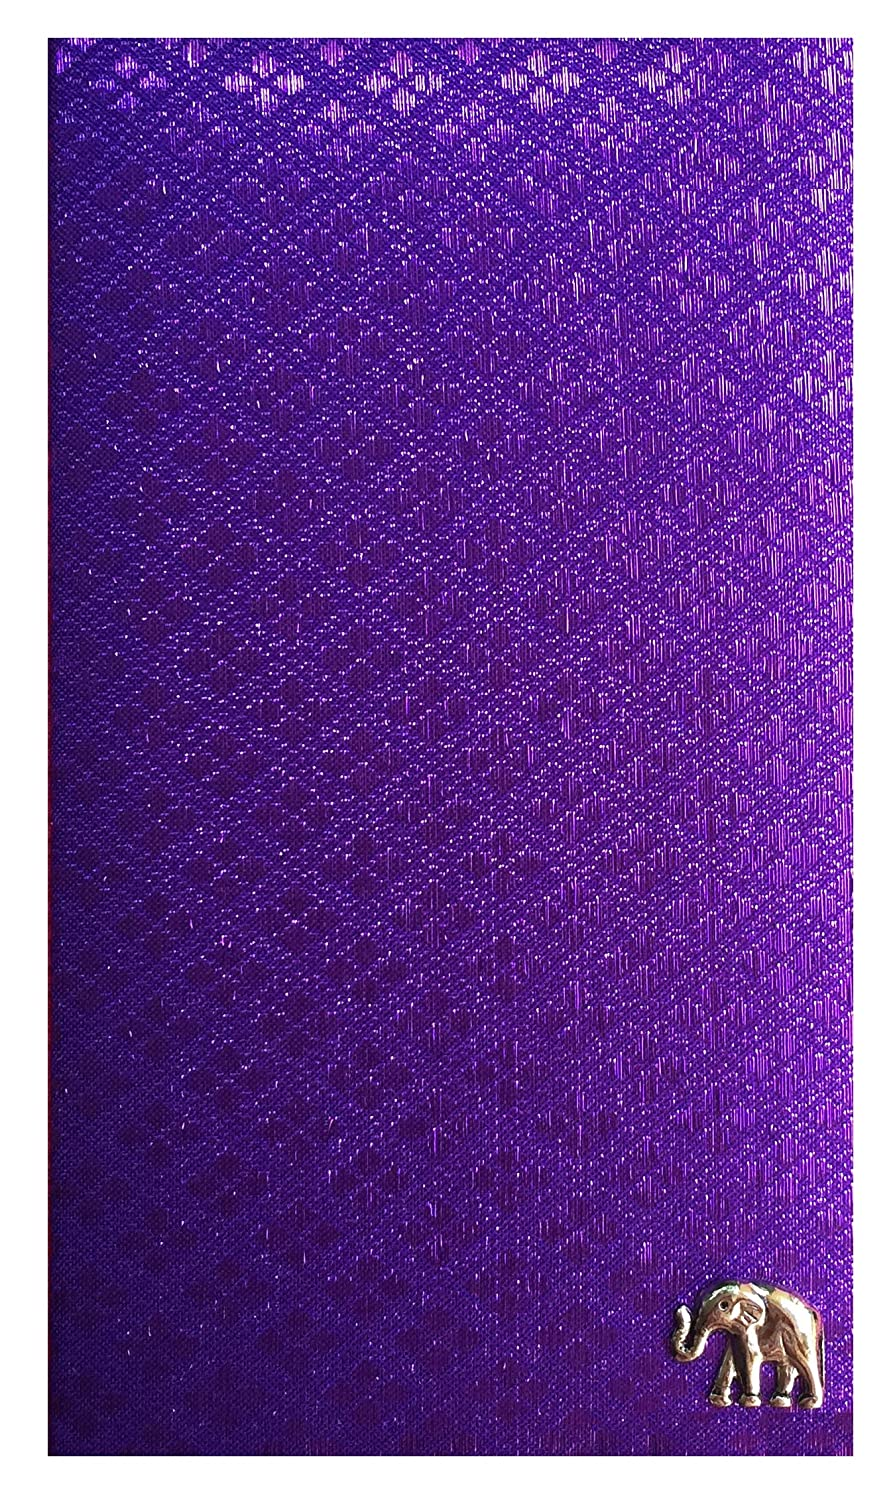 Handmade Purple Fabric Guest Checks Large discharge sale Presenters Book Surprise price Holder Check